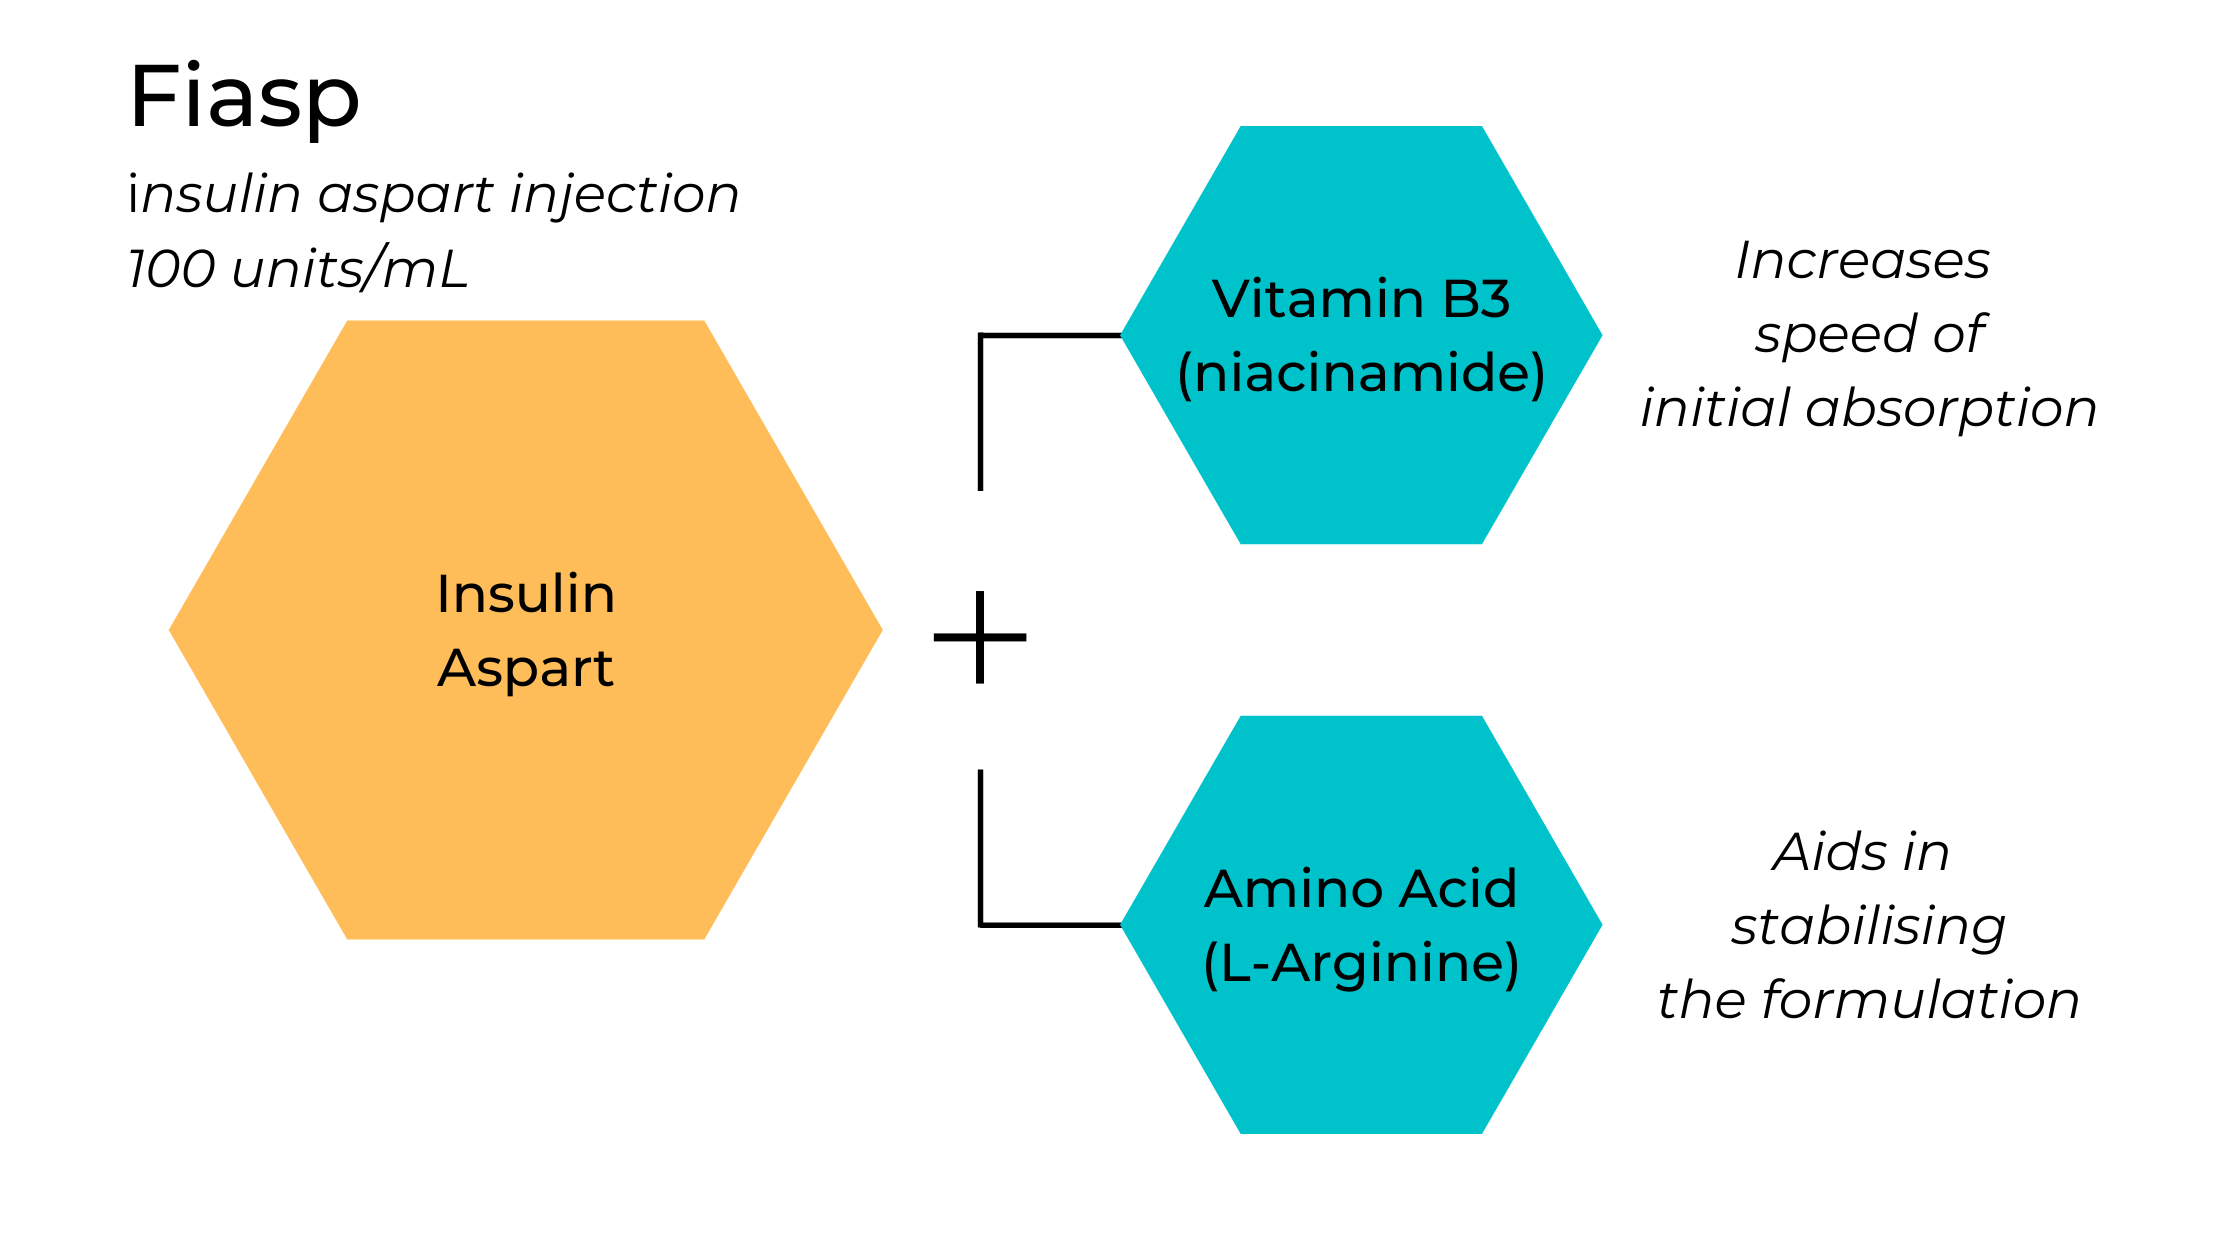 Fiasp is made up insulin aspart and Vitamin B3 (niacinamide) and an amino acid (L-Arginine)